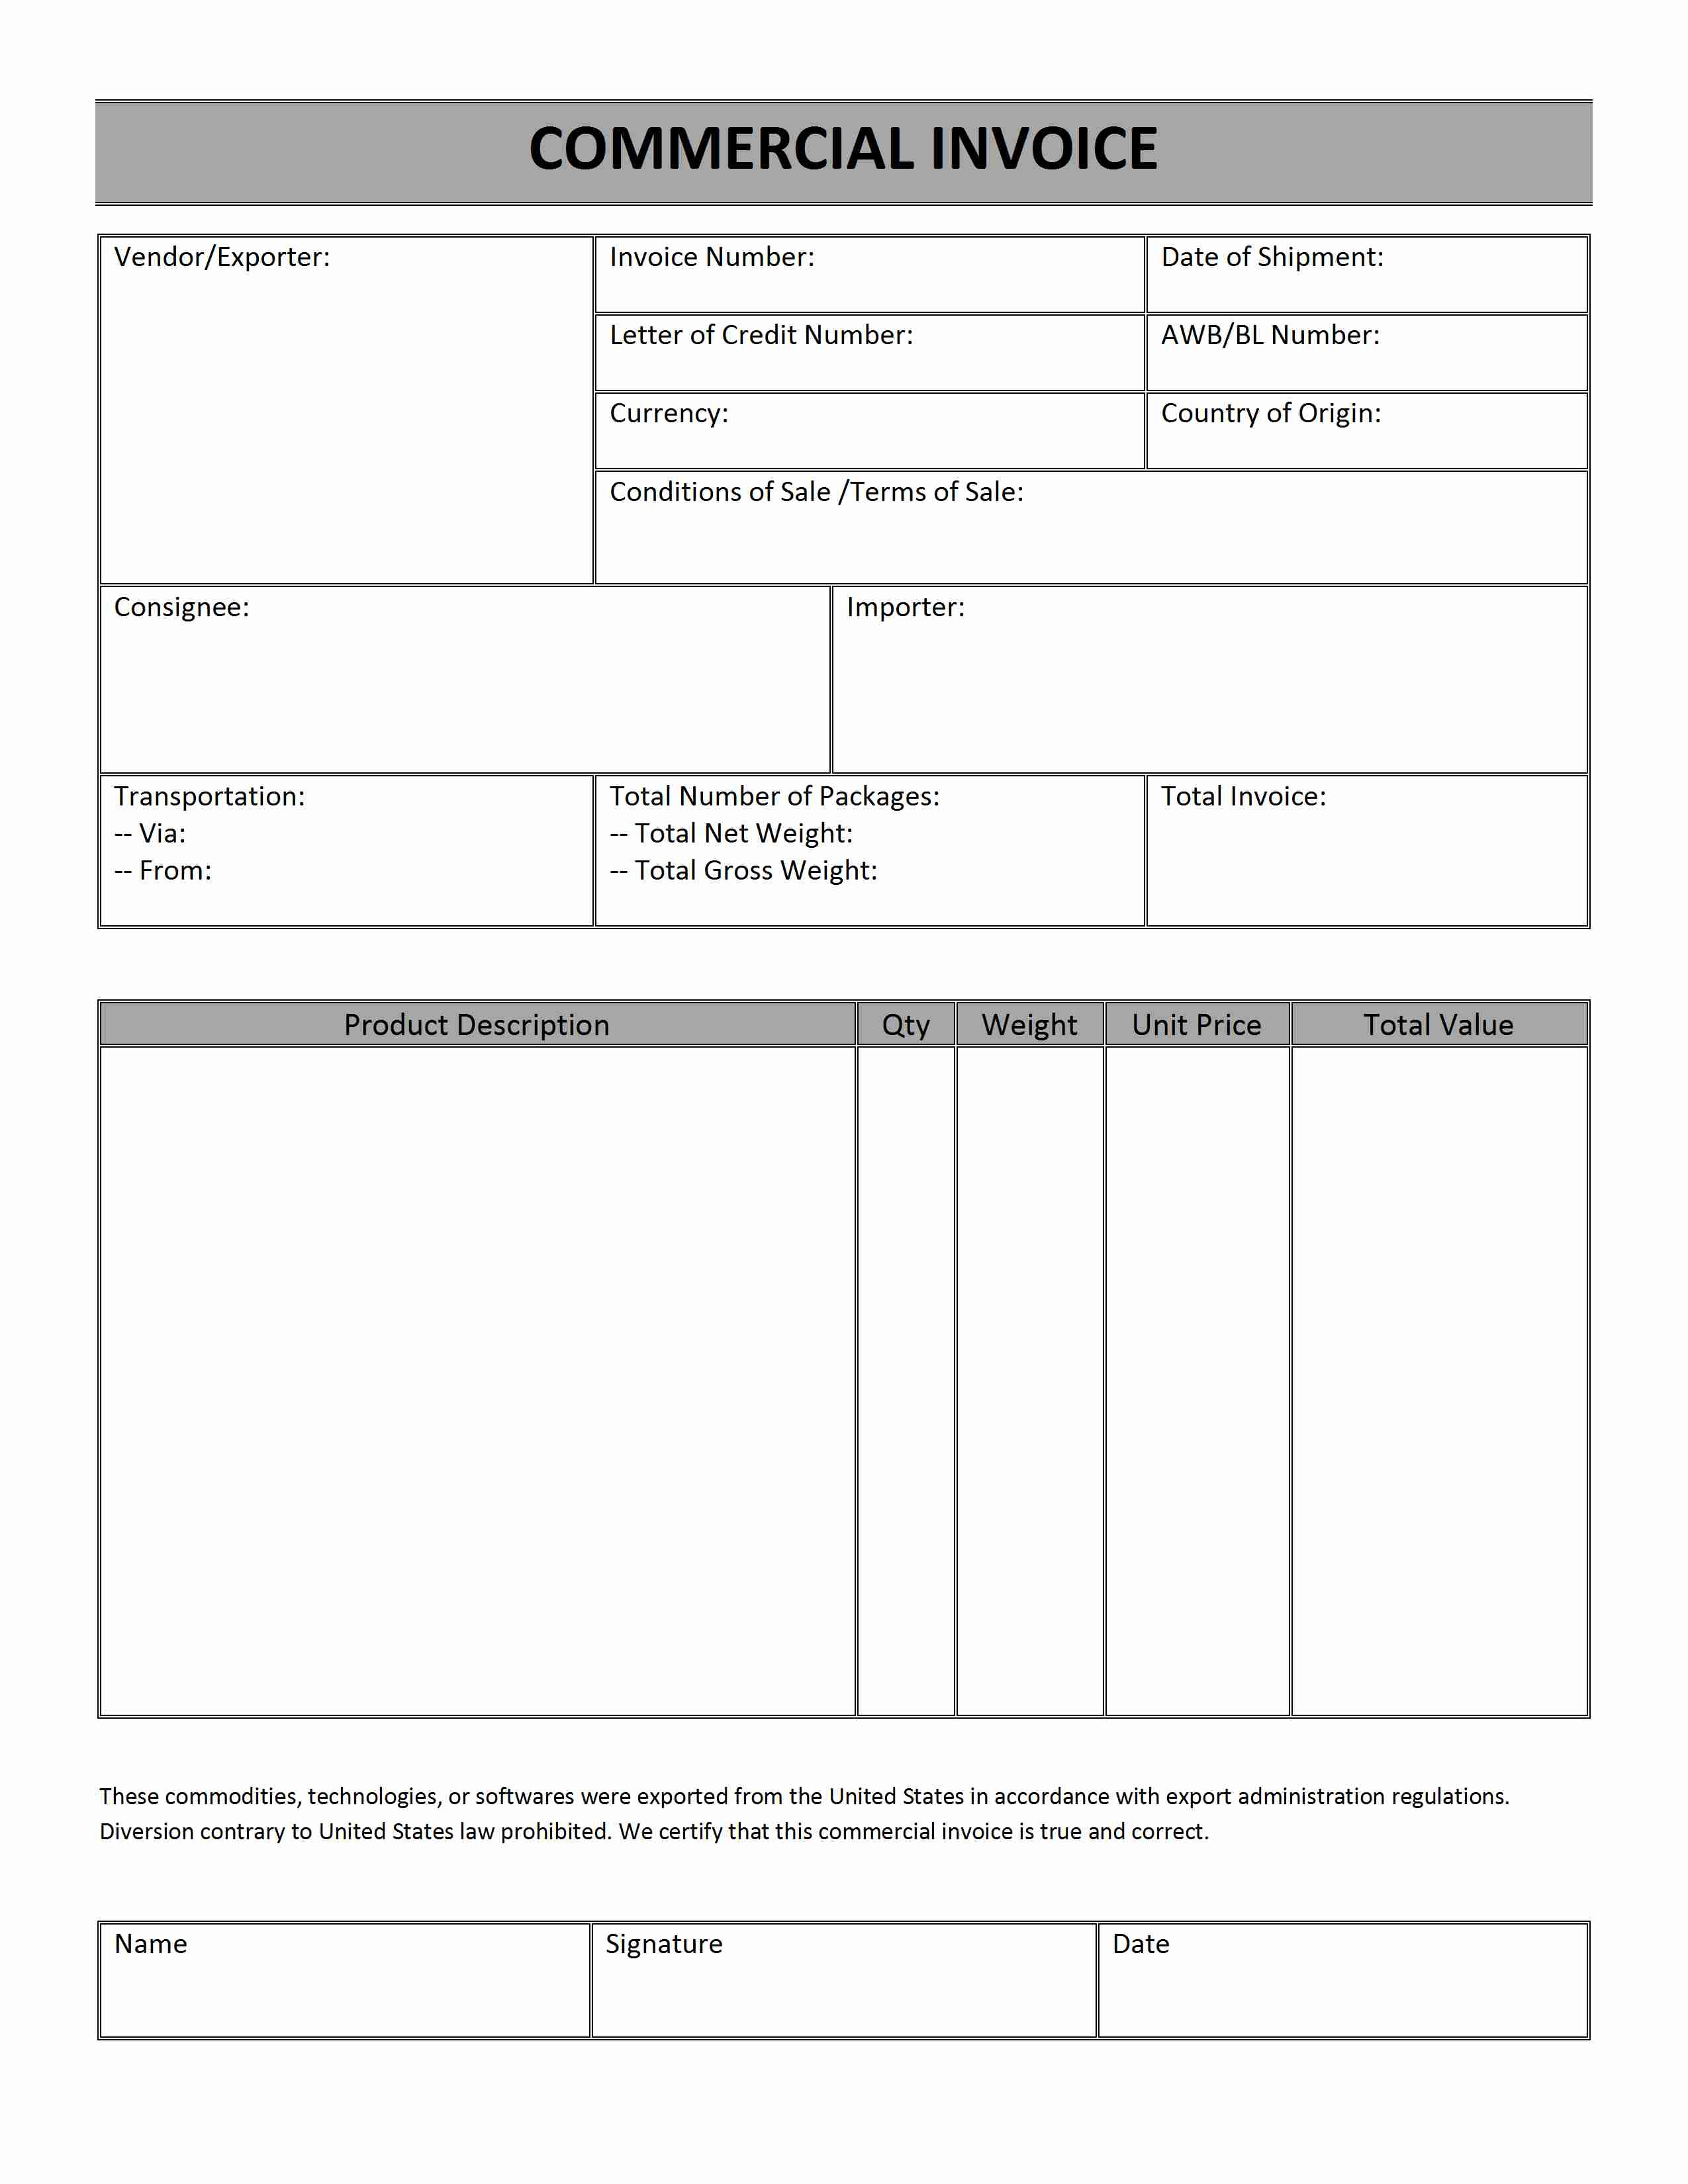 Maidofhonortoastus  Wonderful Printable Sales Invoice Simple Invoice Form Free Invoice  With Inspiring Printable Receipt Free  Free Printable Raffle Tickets  Receipt   Printable With Archaic Unpaid Invoice Also Invoice And Receipt In Addition Payment Terms Examples Invoices And Invoice Template Indesign As Well As Free Template For Invoice Additionally How To Send Invoice Paypal From Happytomco With Maidofhonortoastus  Inspiring Printable Sales Invoice Simple Invoice Form Free Invoice  With Archaic Printable Receipt Free  Free Printable Raffle Tickets  Receipt   Printable And Wonderful Unpaid Invoice Also Invoice And Receipt In Addition Payment Terms Examples Invoices From Happytomco